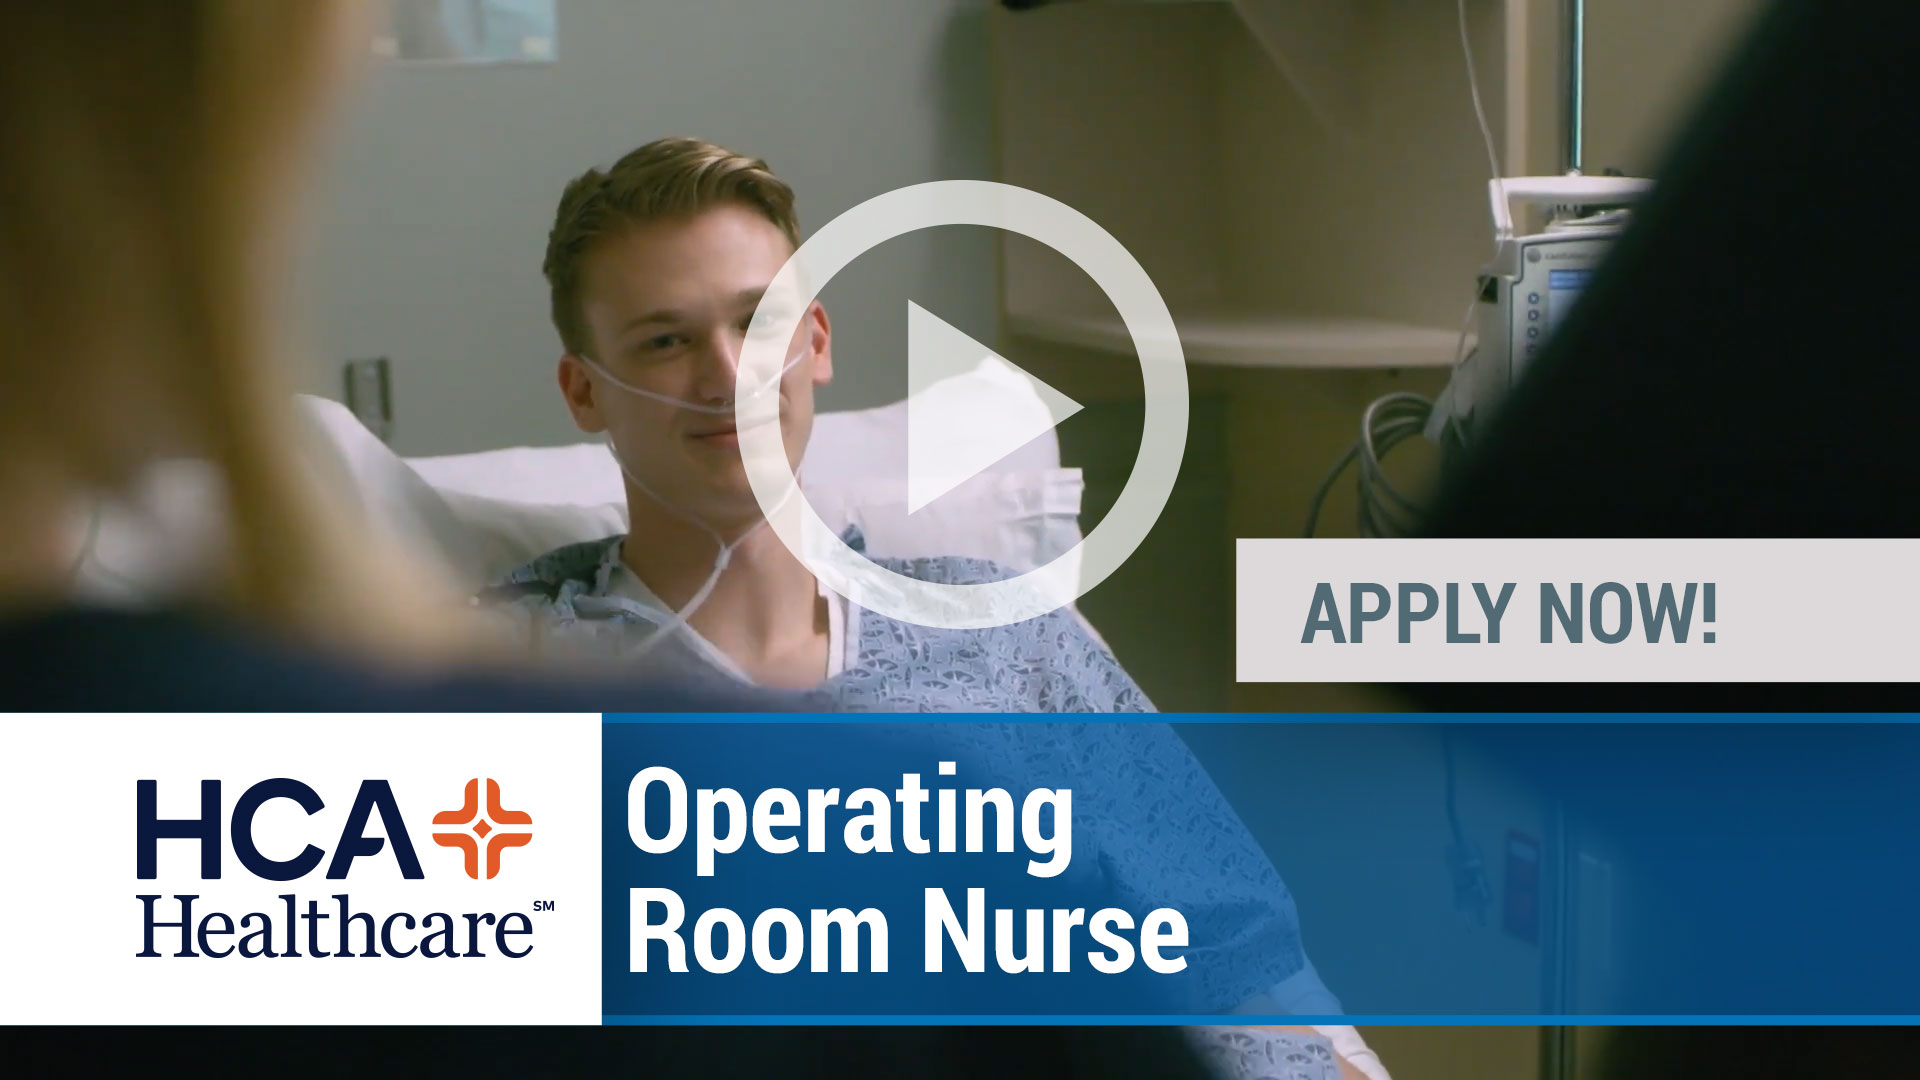 Watch our careers video for available job opening Operating Room Nurse in Tallahassee, Florida